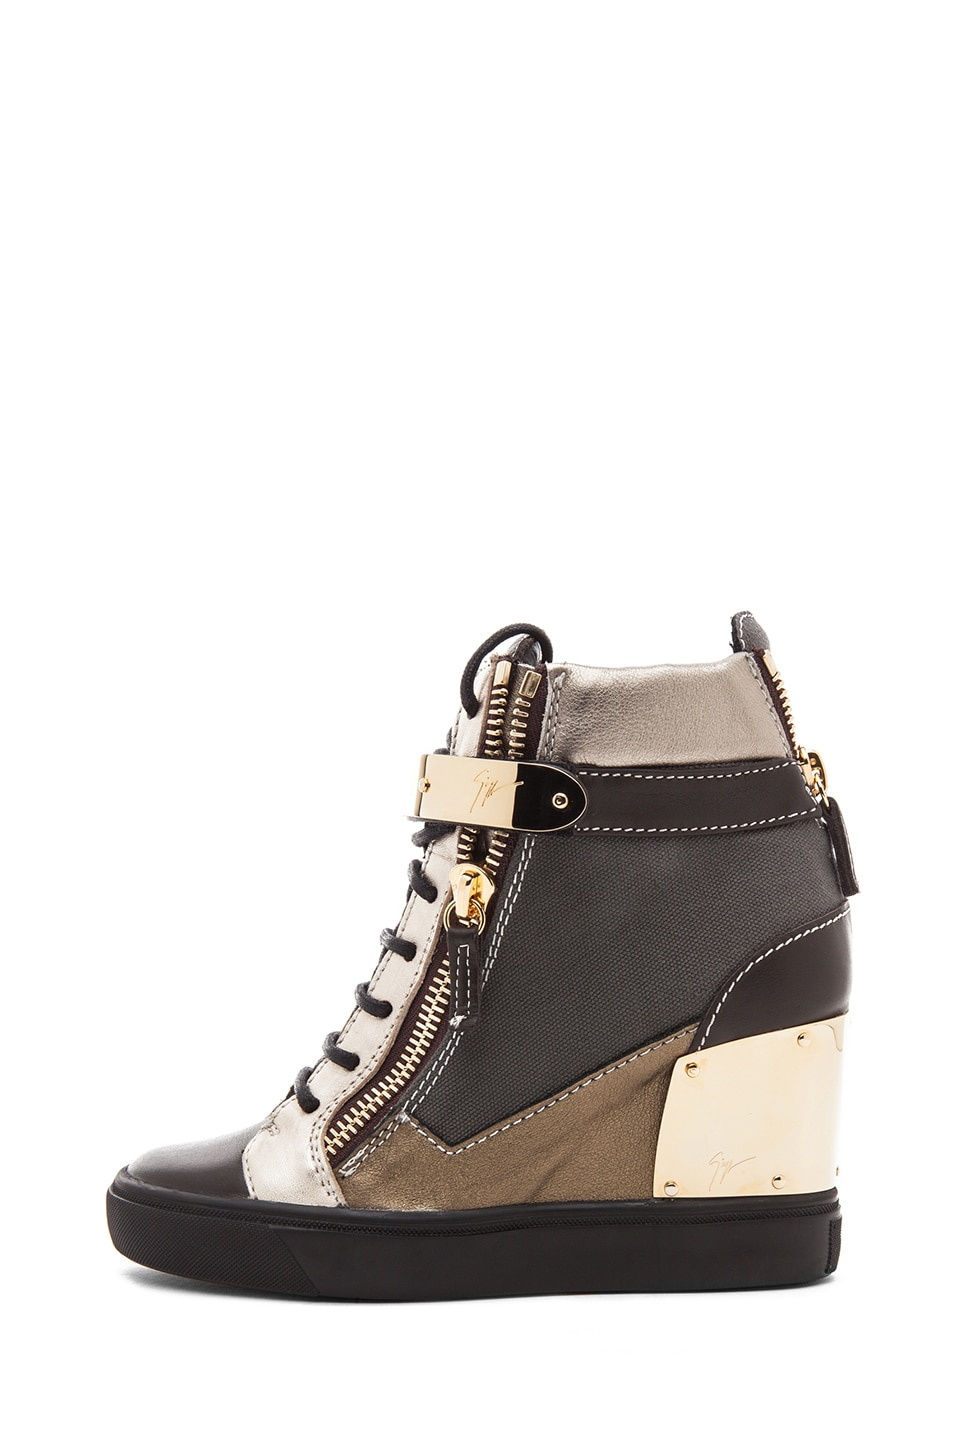 Image 1 of Giuseppe Zanotti Canvas & Leather Gold Strap Sneaker Wedge in Black Metallic